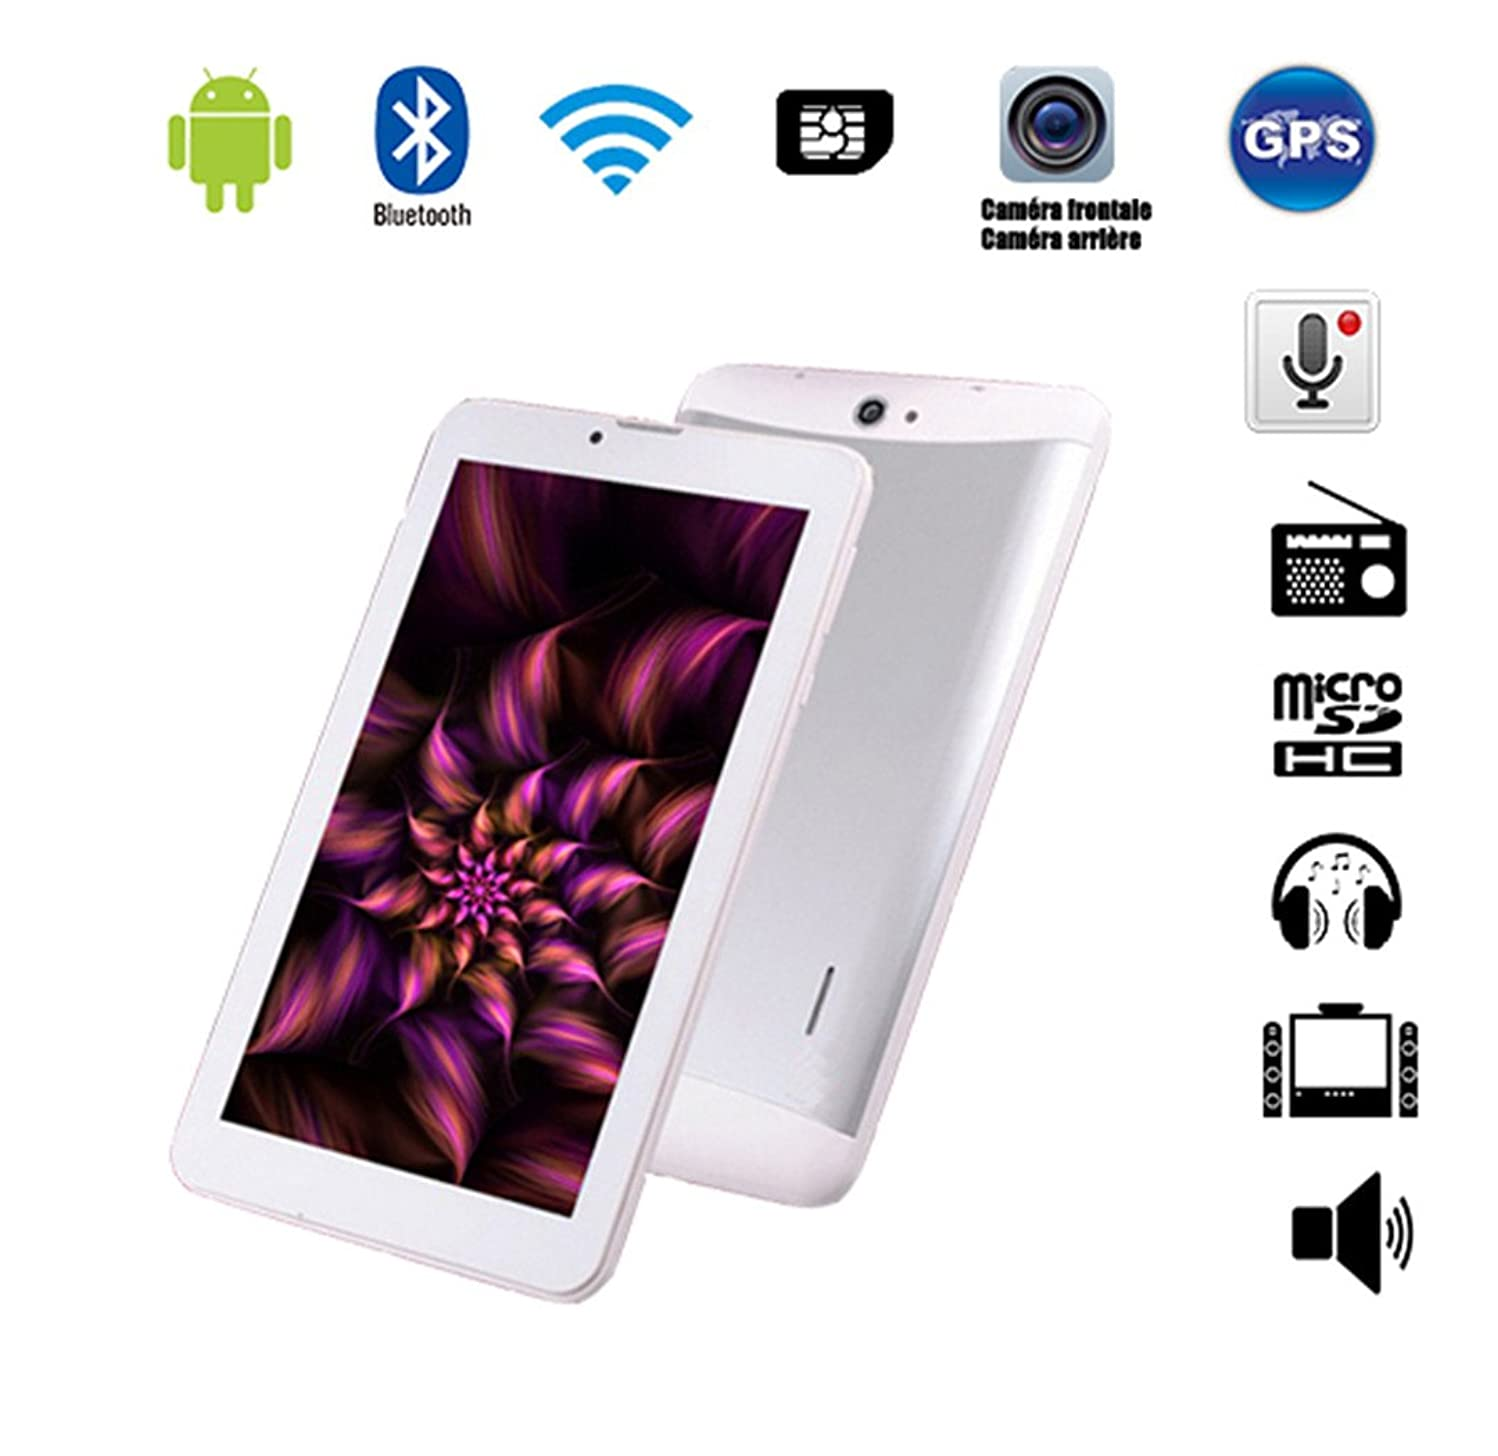 Tablet Tactile Phablet Smartphone(Unlocked) Double SIM 7